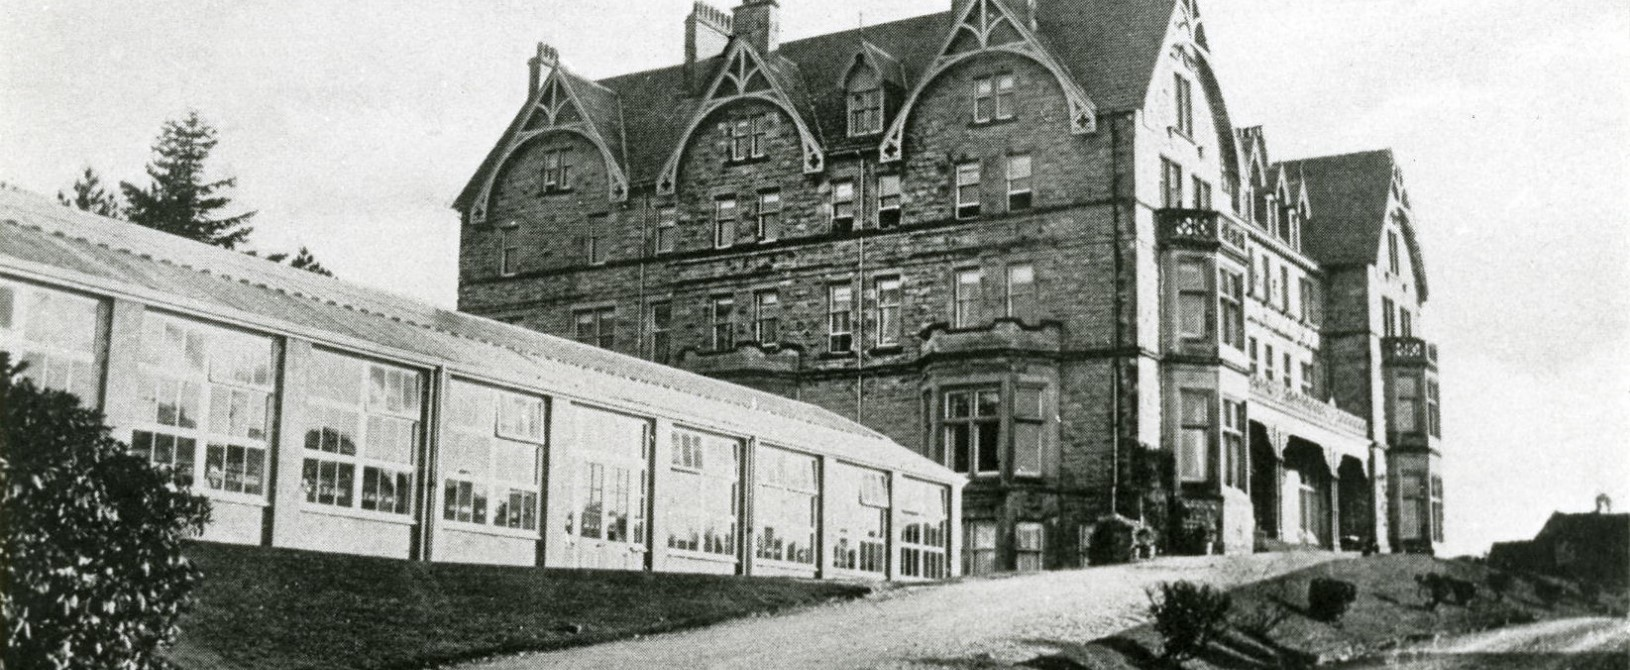 The Highland Hotel during its conversion to the Oppenheim Diamond Factory